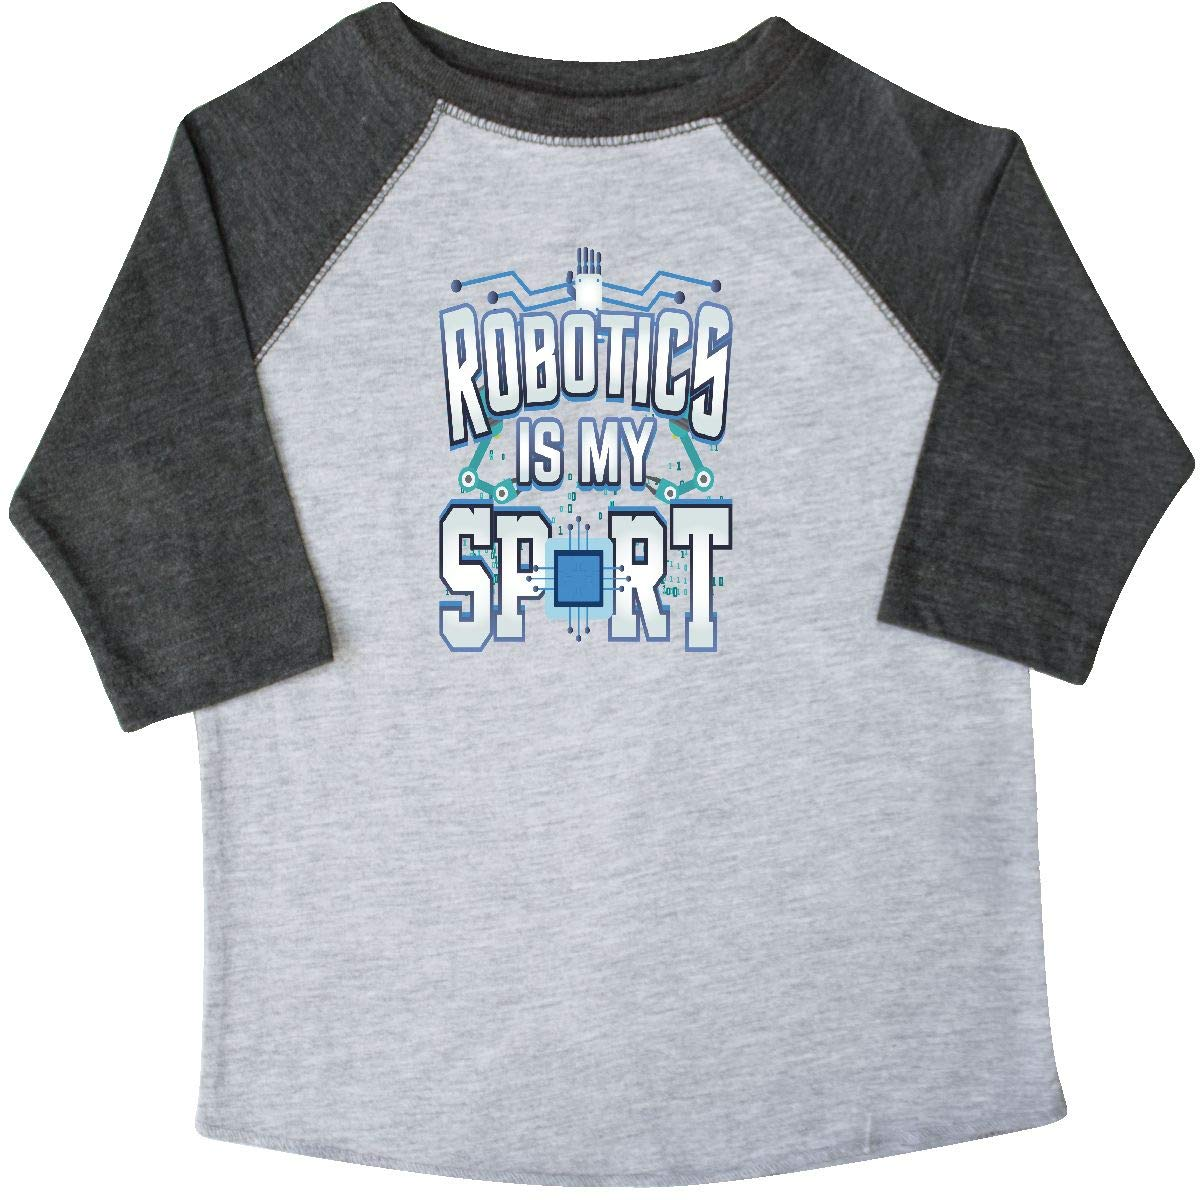 02ba06c5 Amazon.com: inktastic - Robotics is My Sport Funny Engineering Toddler T- Shirt 33620: Clothing